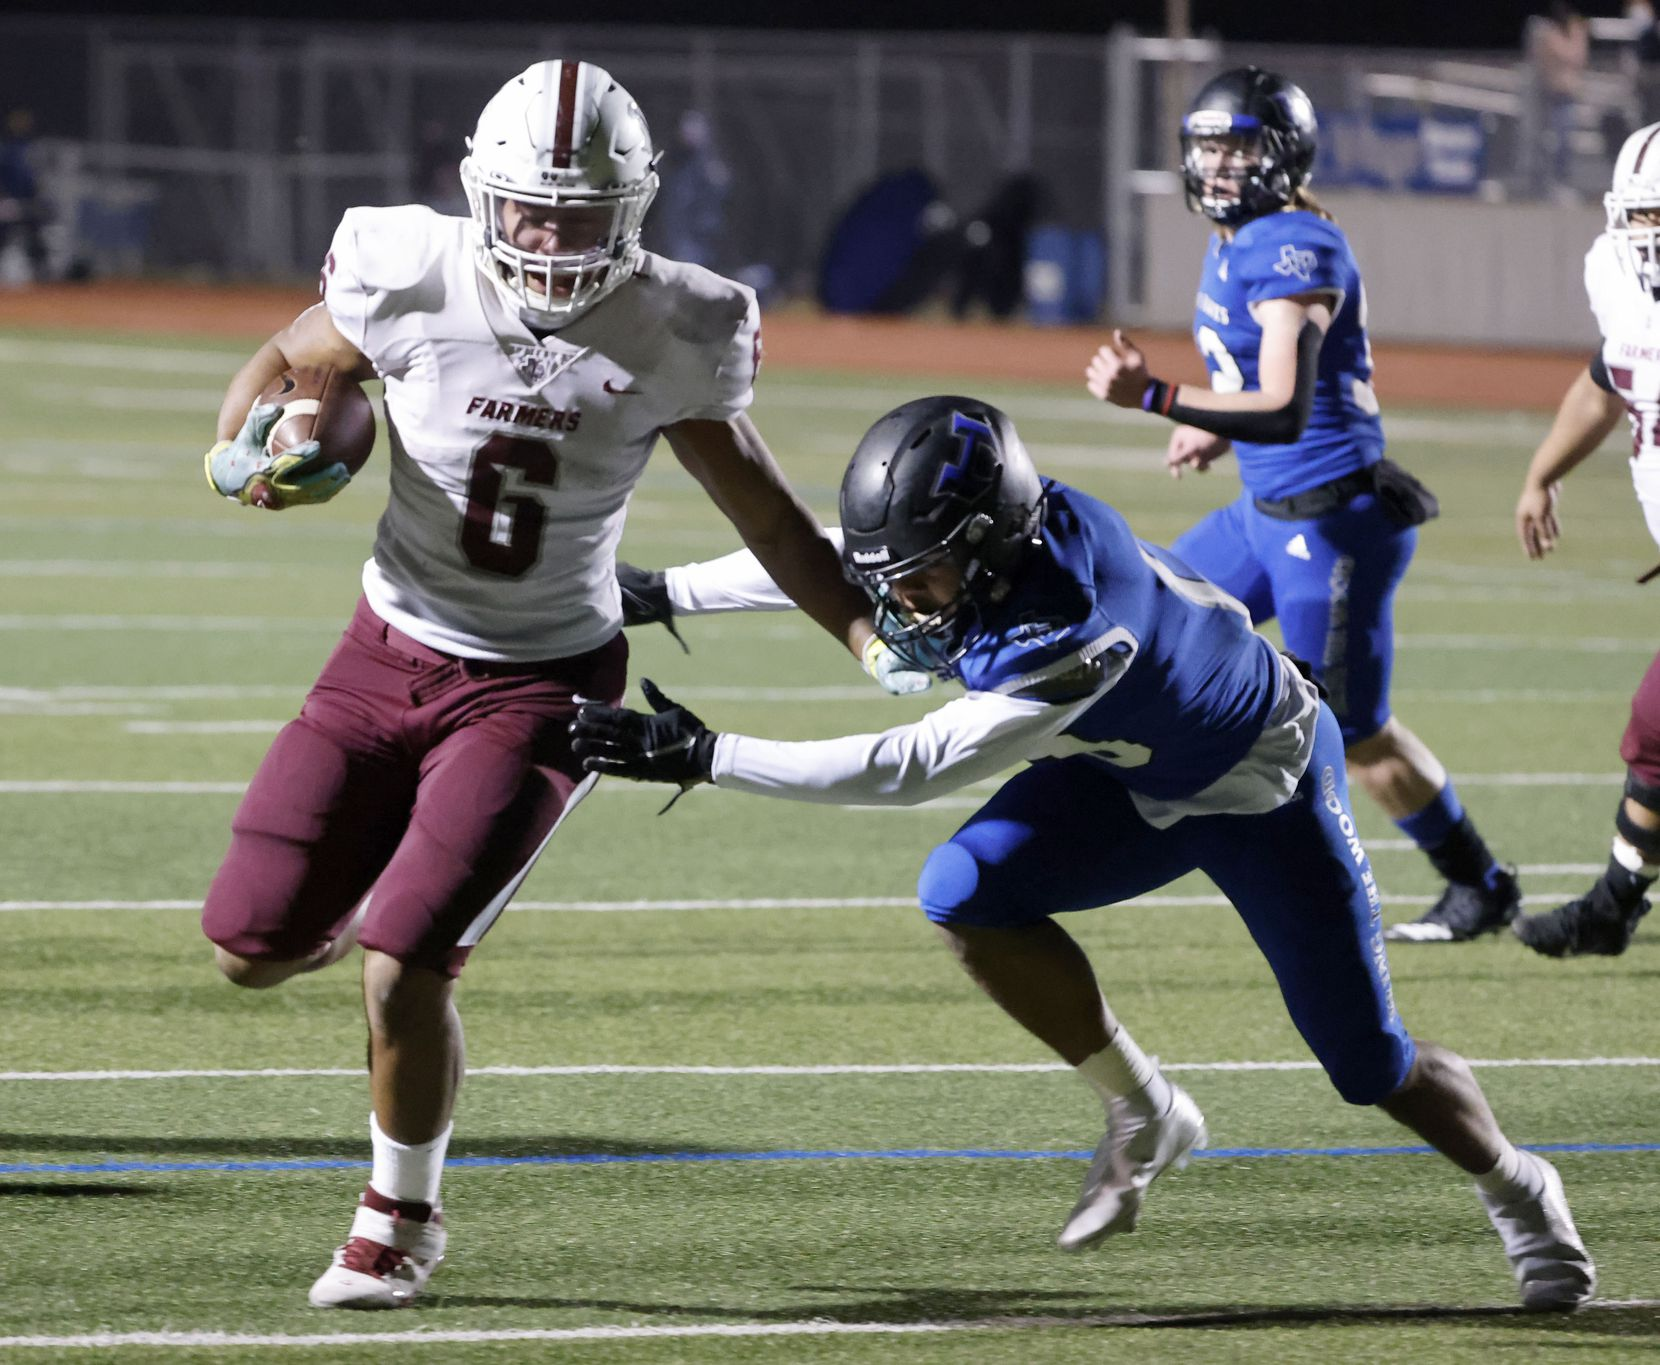 Lewisville running back Damien Martinez (6)  scores a touchdown as Hebron's Vincon Miller (13) attempts a tackle during their District 6-6A high school football game on Dec. 4, 2020. (Michael Ainsworth/Special Contributor)